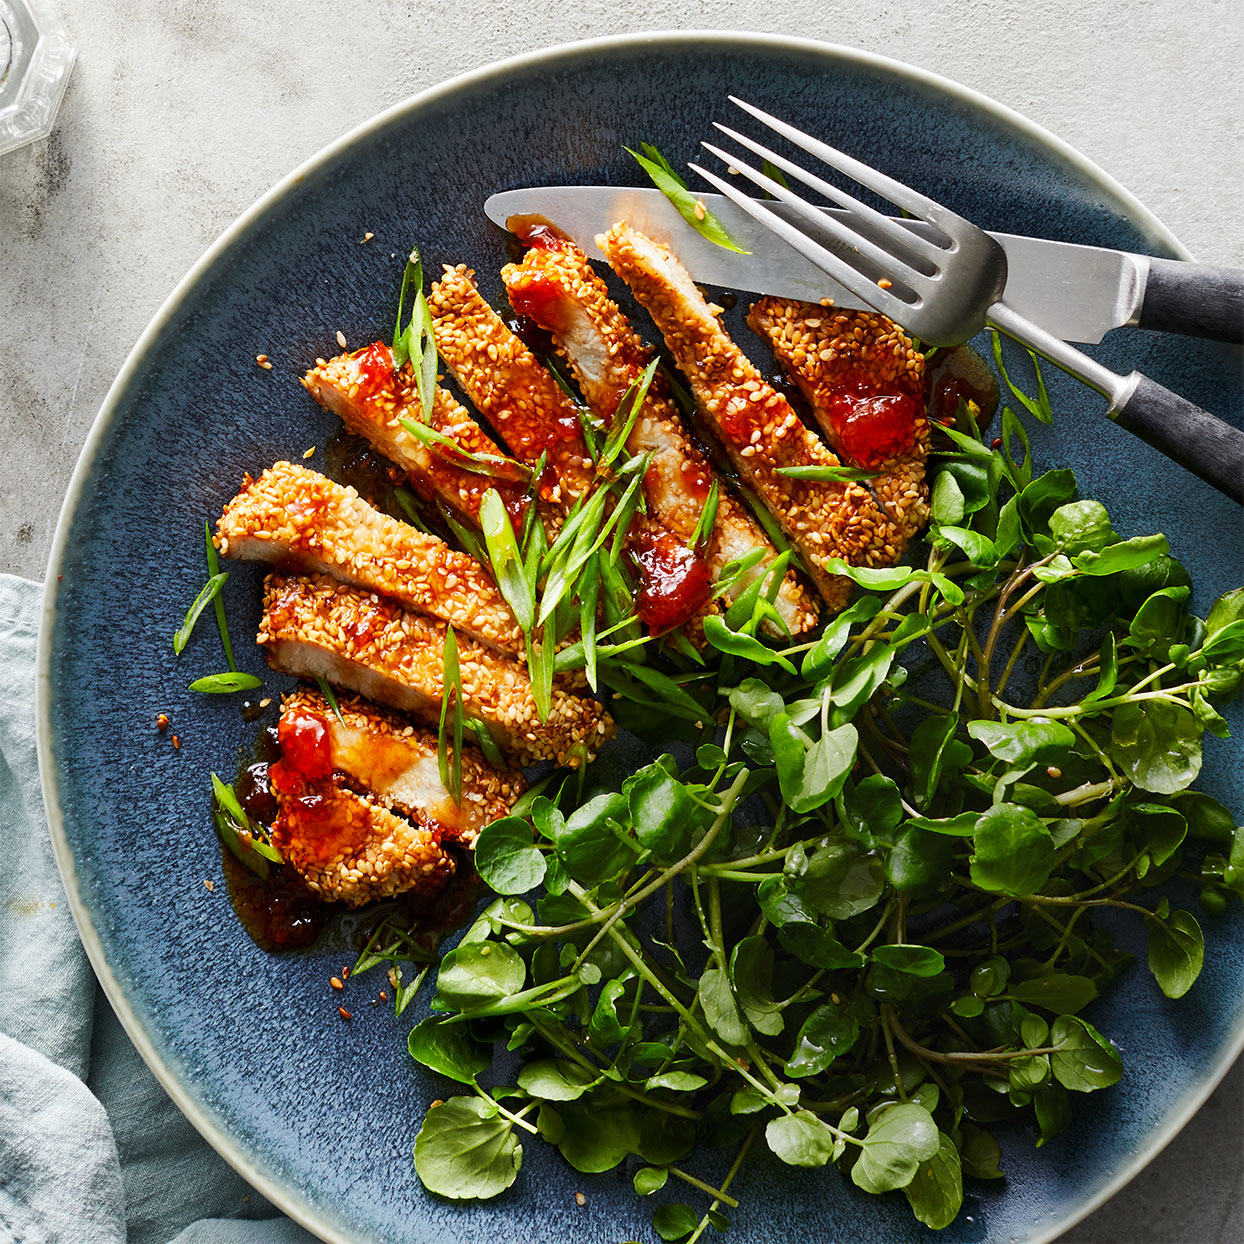 You'll recognize the classic Chinese flavor pairing of sesame, soy and white pepper on these sweet and sour pork chops. White pepper is more mild and earthy than black pepper, but either will work here. Source: EatingWell Magazine, January/February 2020